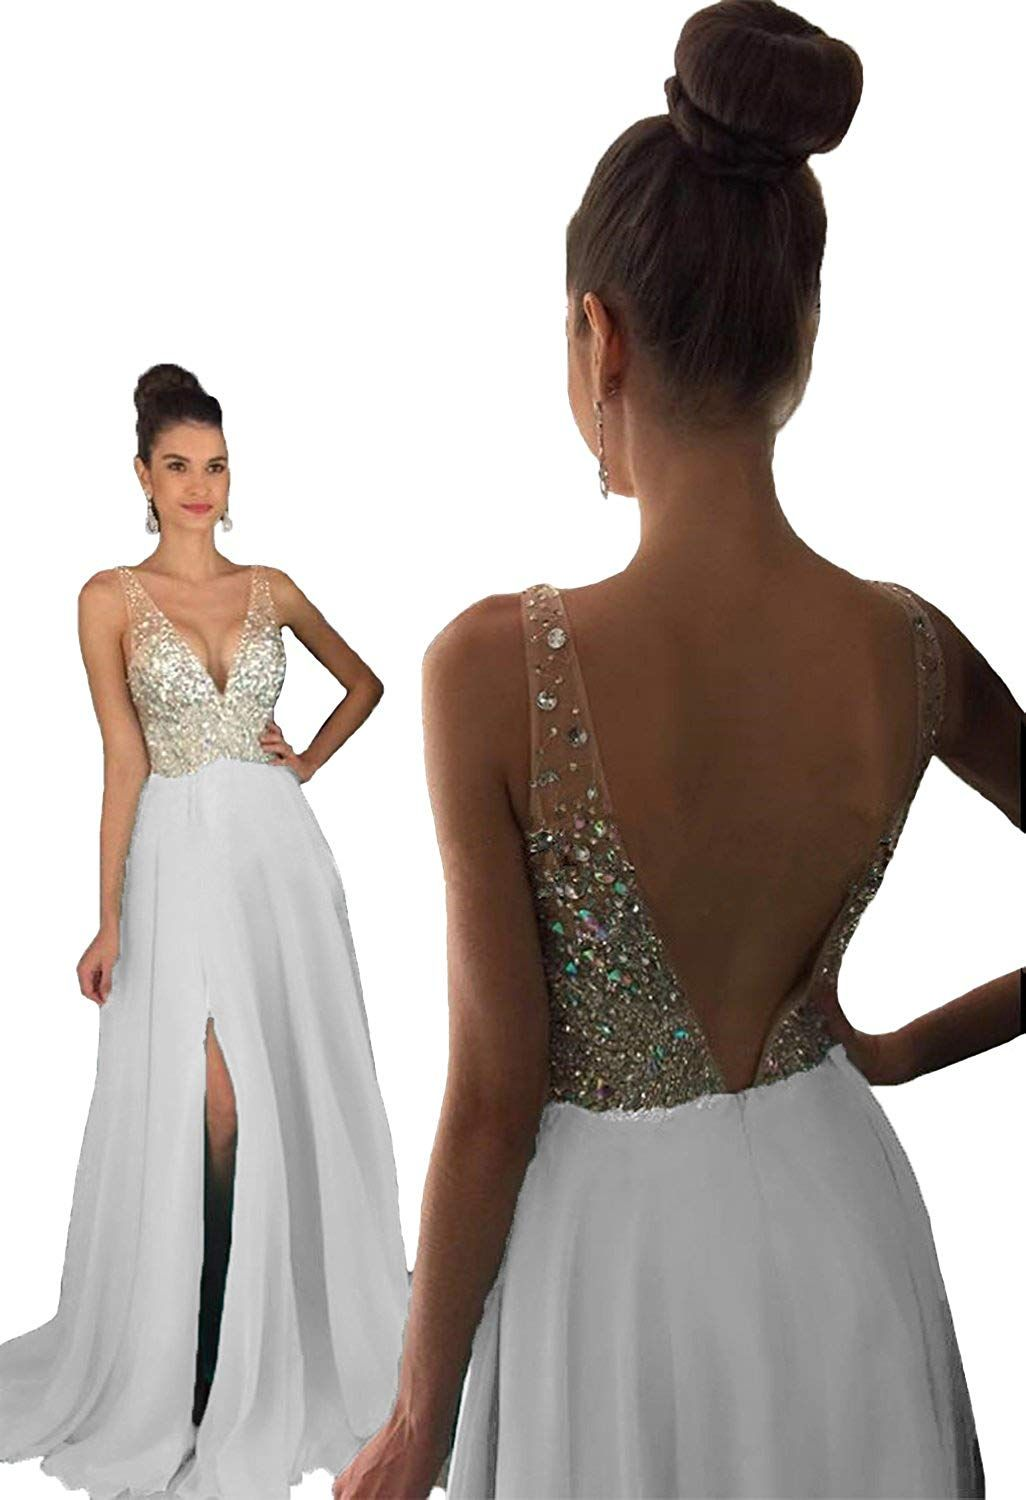 961372b9a3 Ladies Evening Dresses At Amazon - Gomes Weine AG